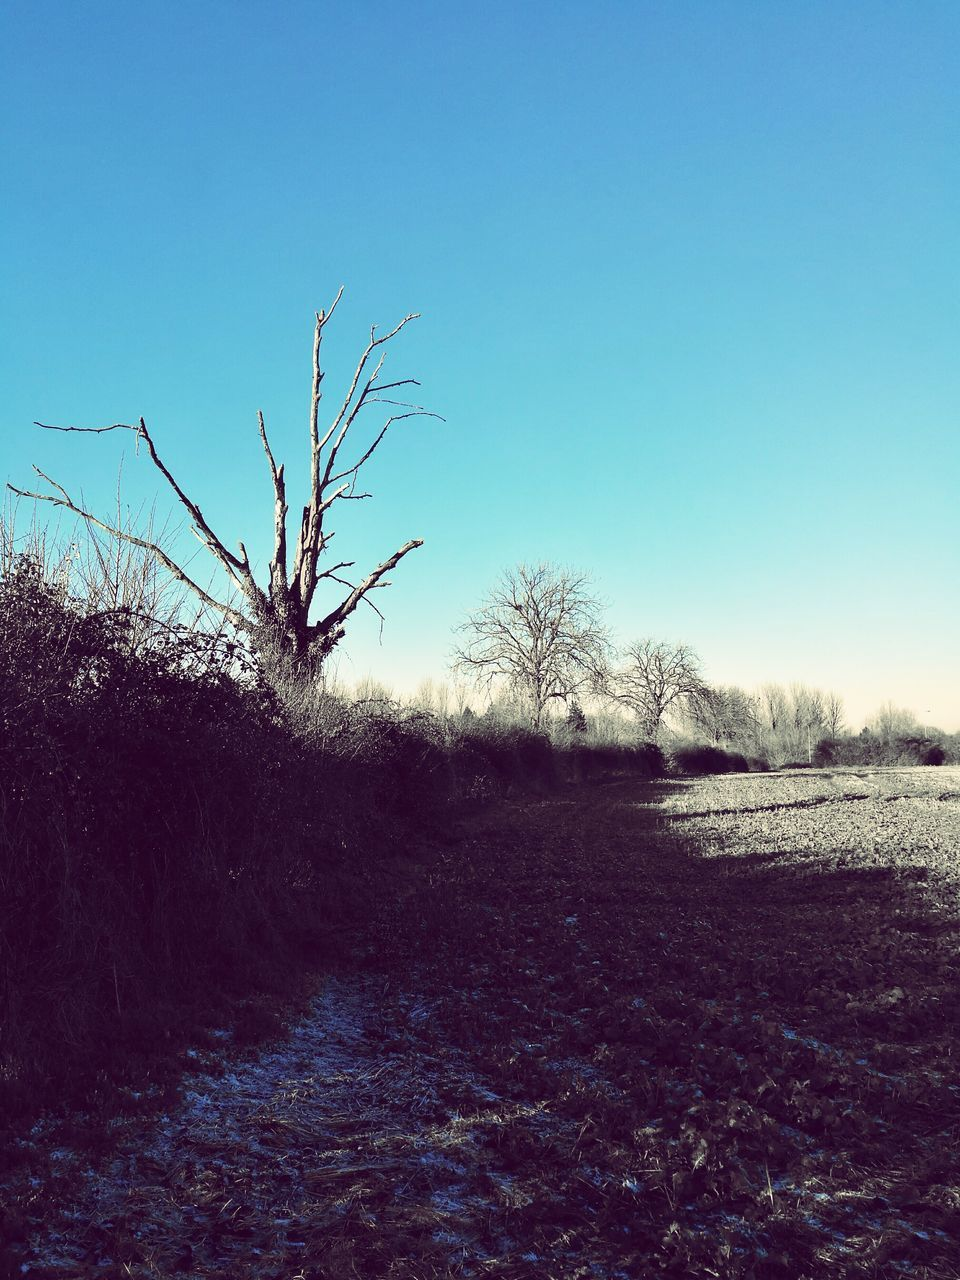 bare tree, tranquility, tranquil scene, clear sky, nature, tree, landscape, beauty in nature, outdoors, scenics, no people, blue, day, plant, branch, sky